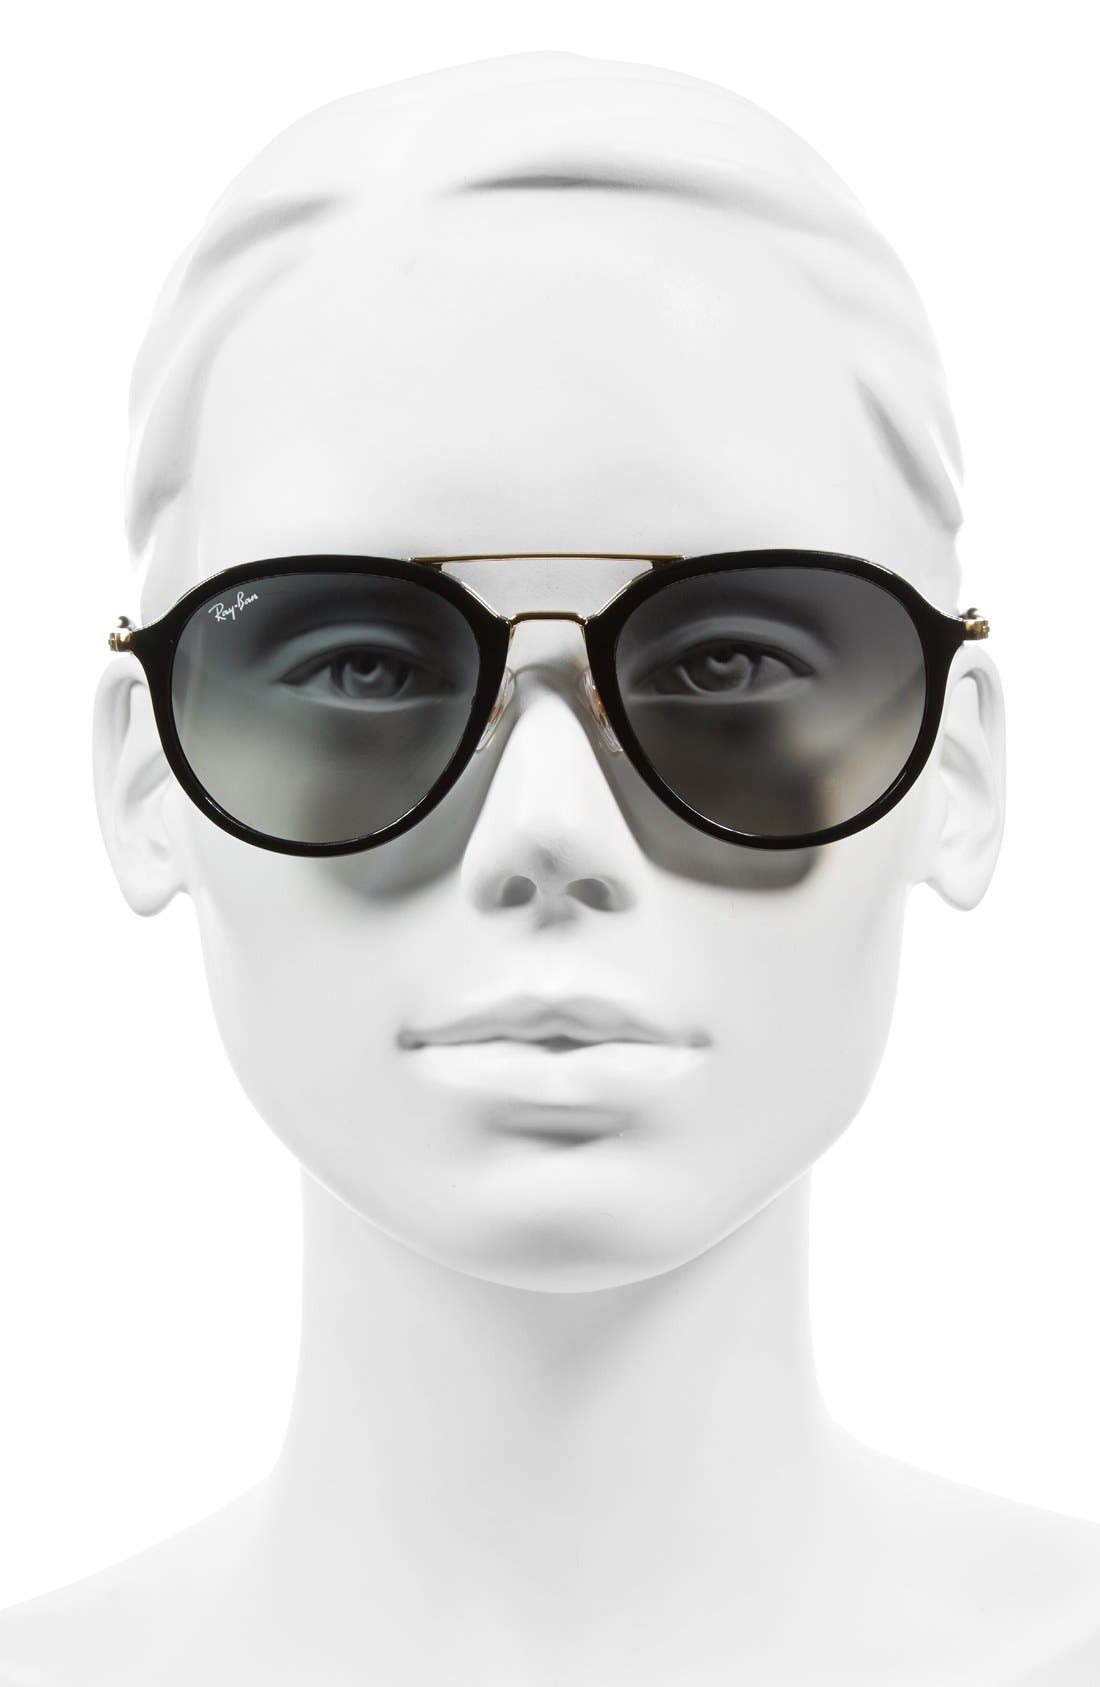 53mm Aviator Sunglasses,                             Alternate thumbnail 2, color,                             001